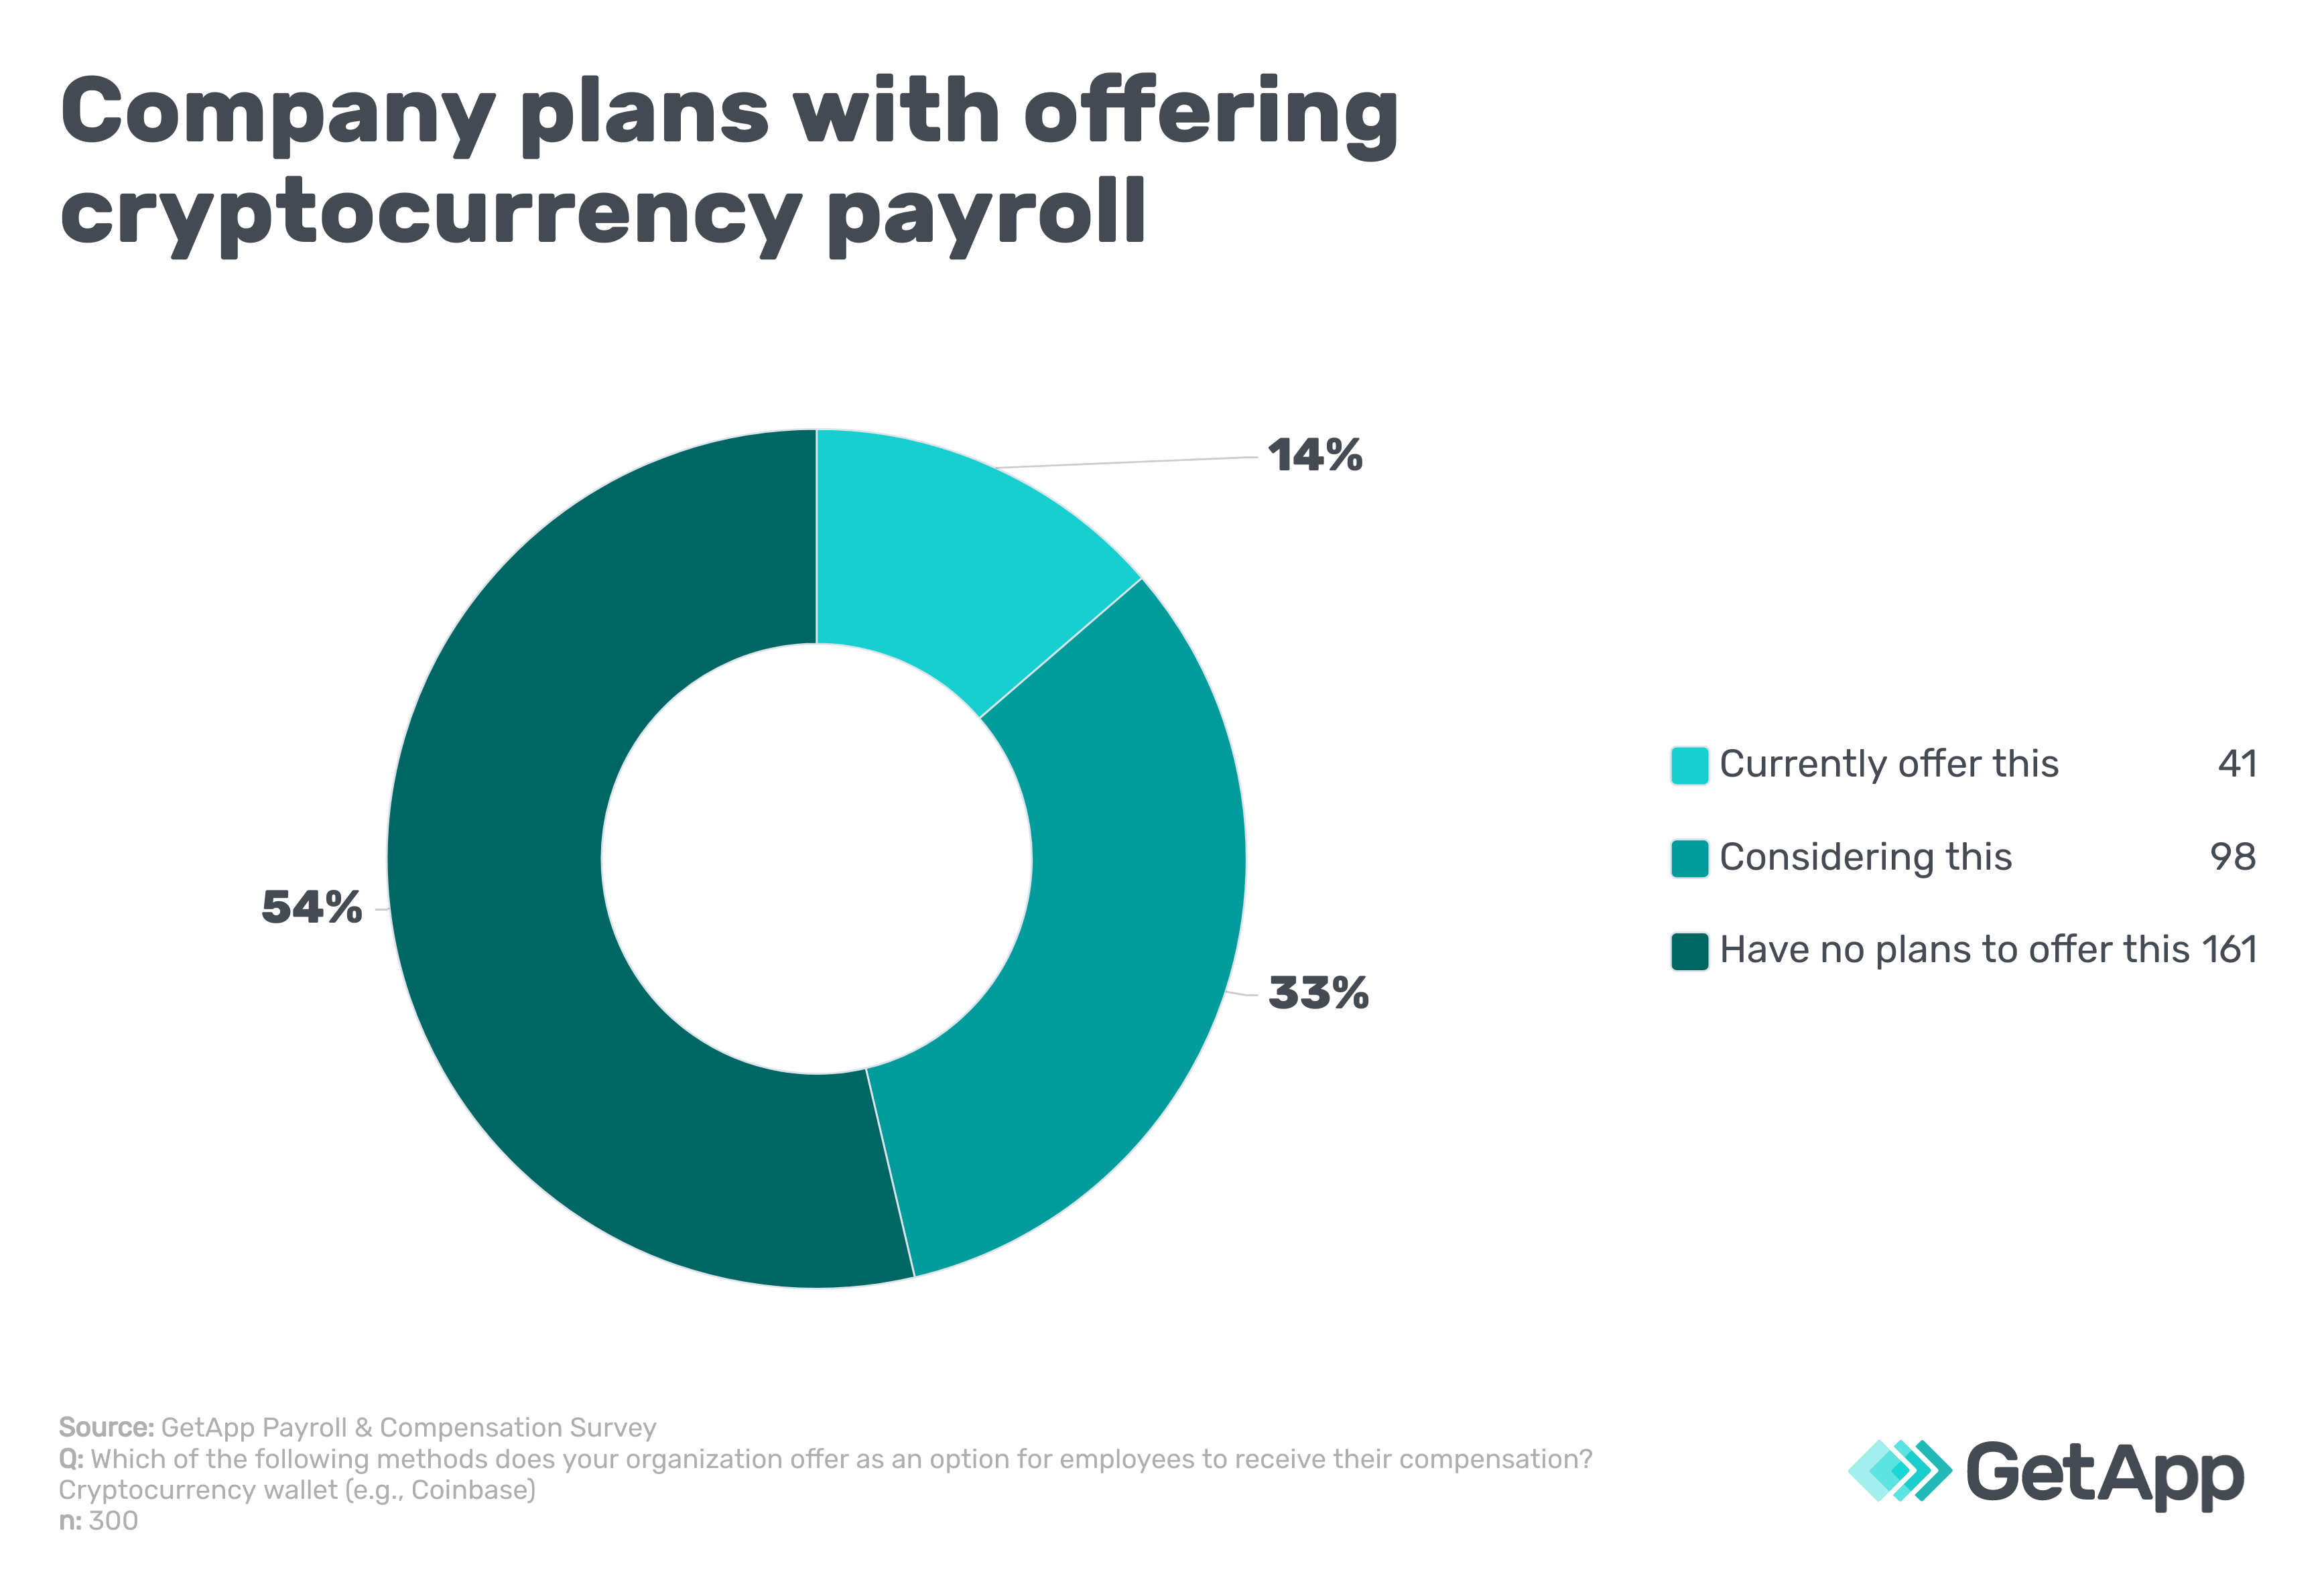 Company plans with offering cryptocurrency payroll